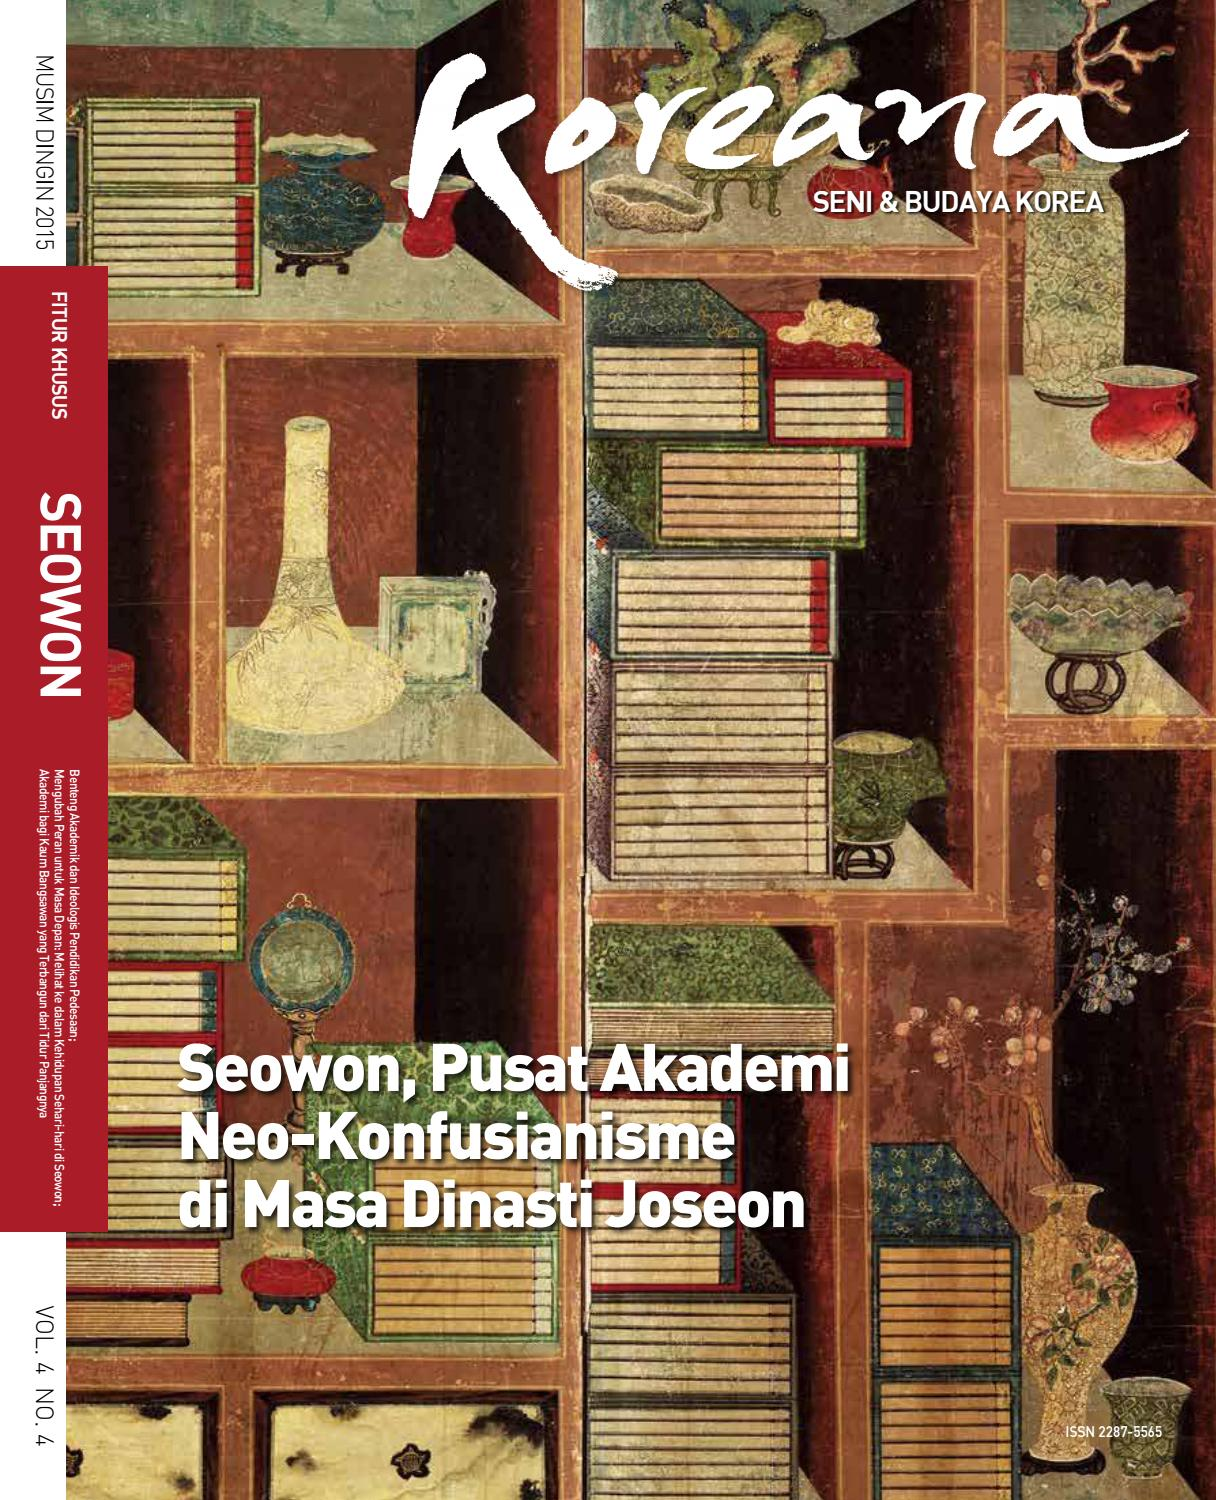 Koreana winter 2015 indonesian by the korea foundation issuu